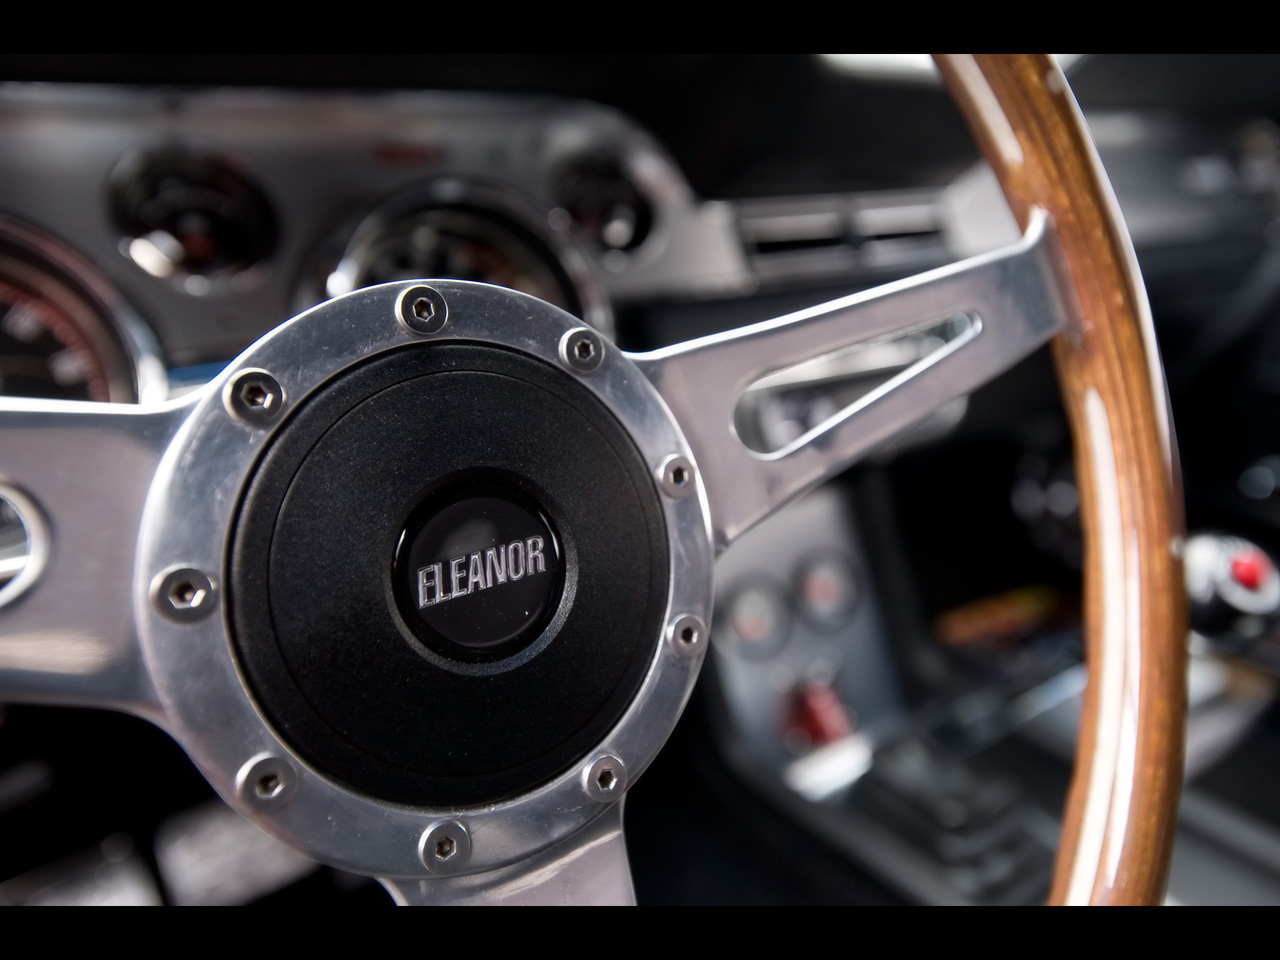 Accidente aéreo en Bali 1967-Mustang-Fastback-Gone-in-60-Seconds-Eleanor-Steering-Wheel-1280x960